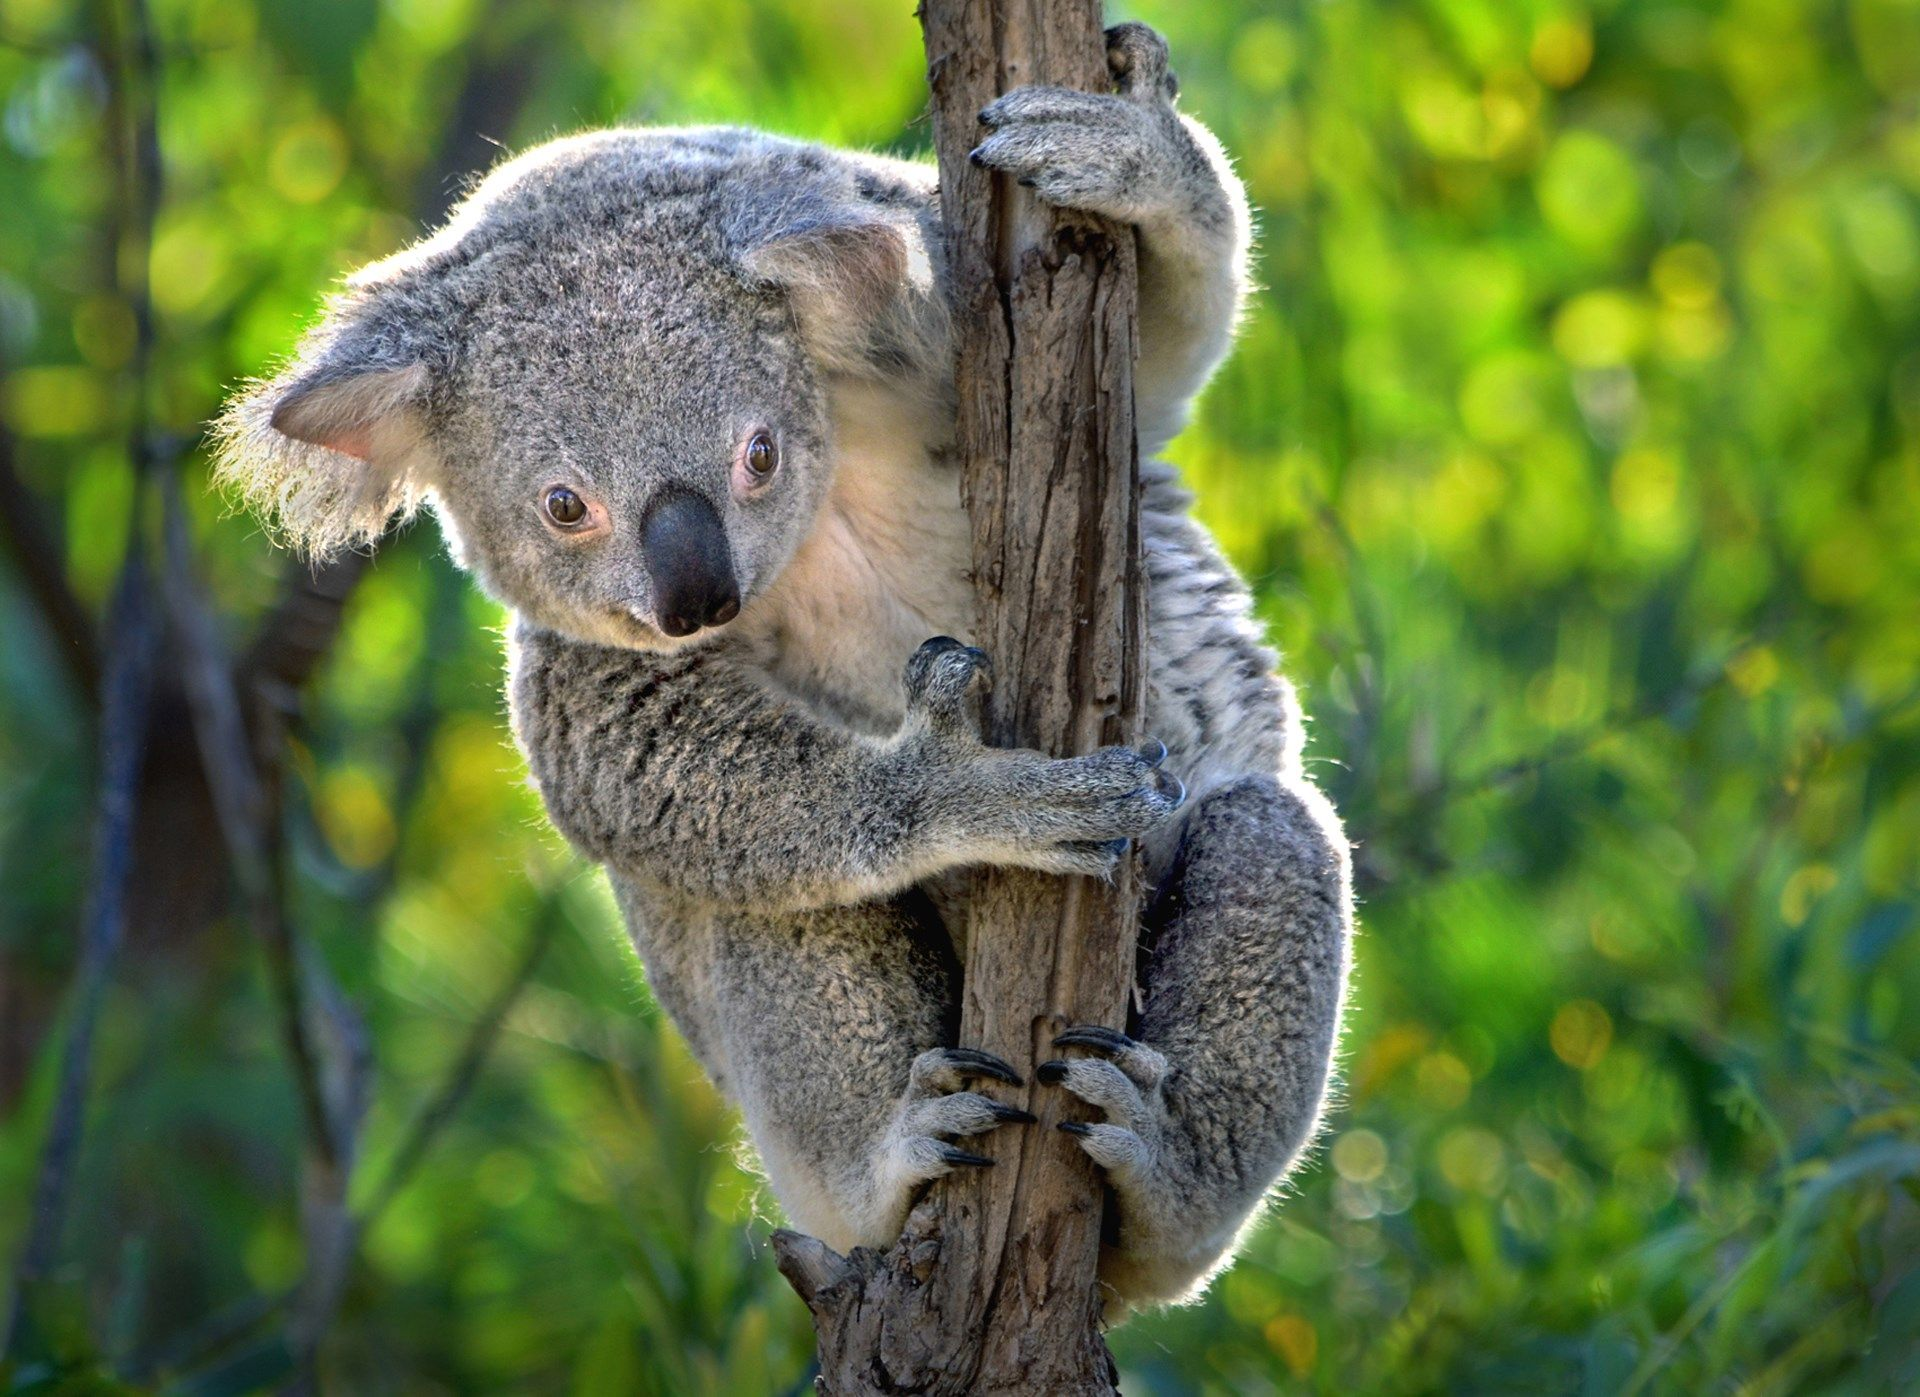 High Quality koala picture - koala category | ololoshenka ...